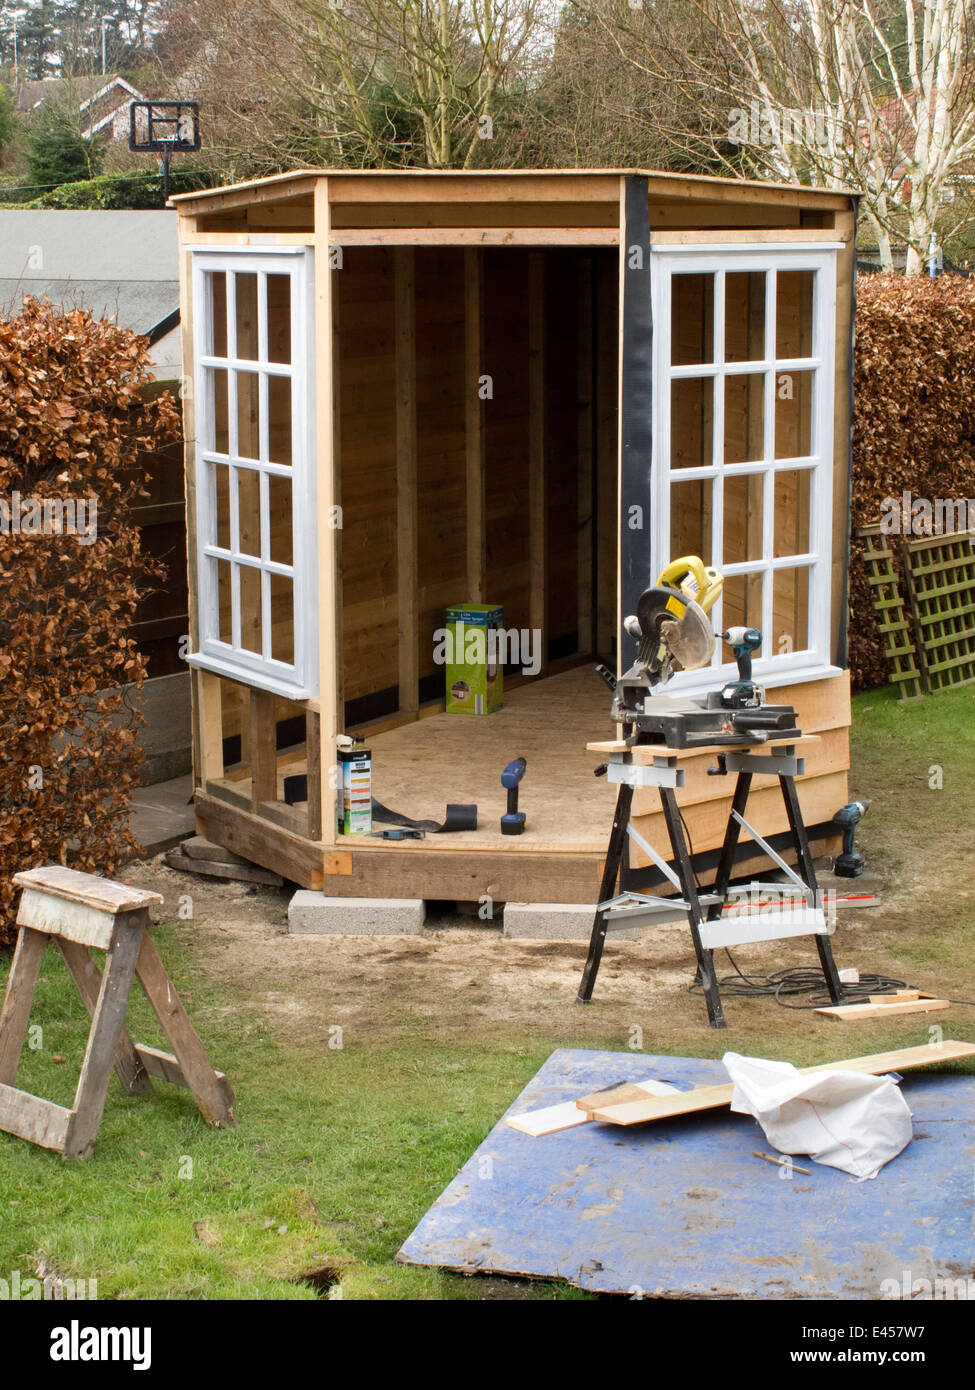 self building shed constructing garden shed with wooden frame and oak feather board round large windows - Garden Sheds With Windows